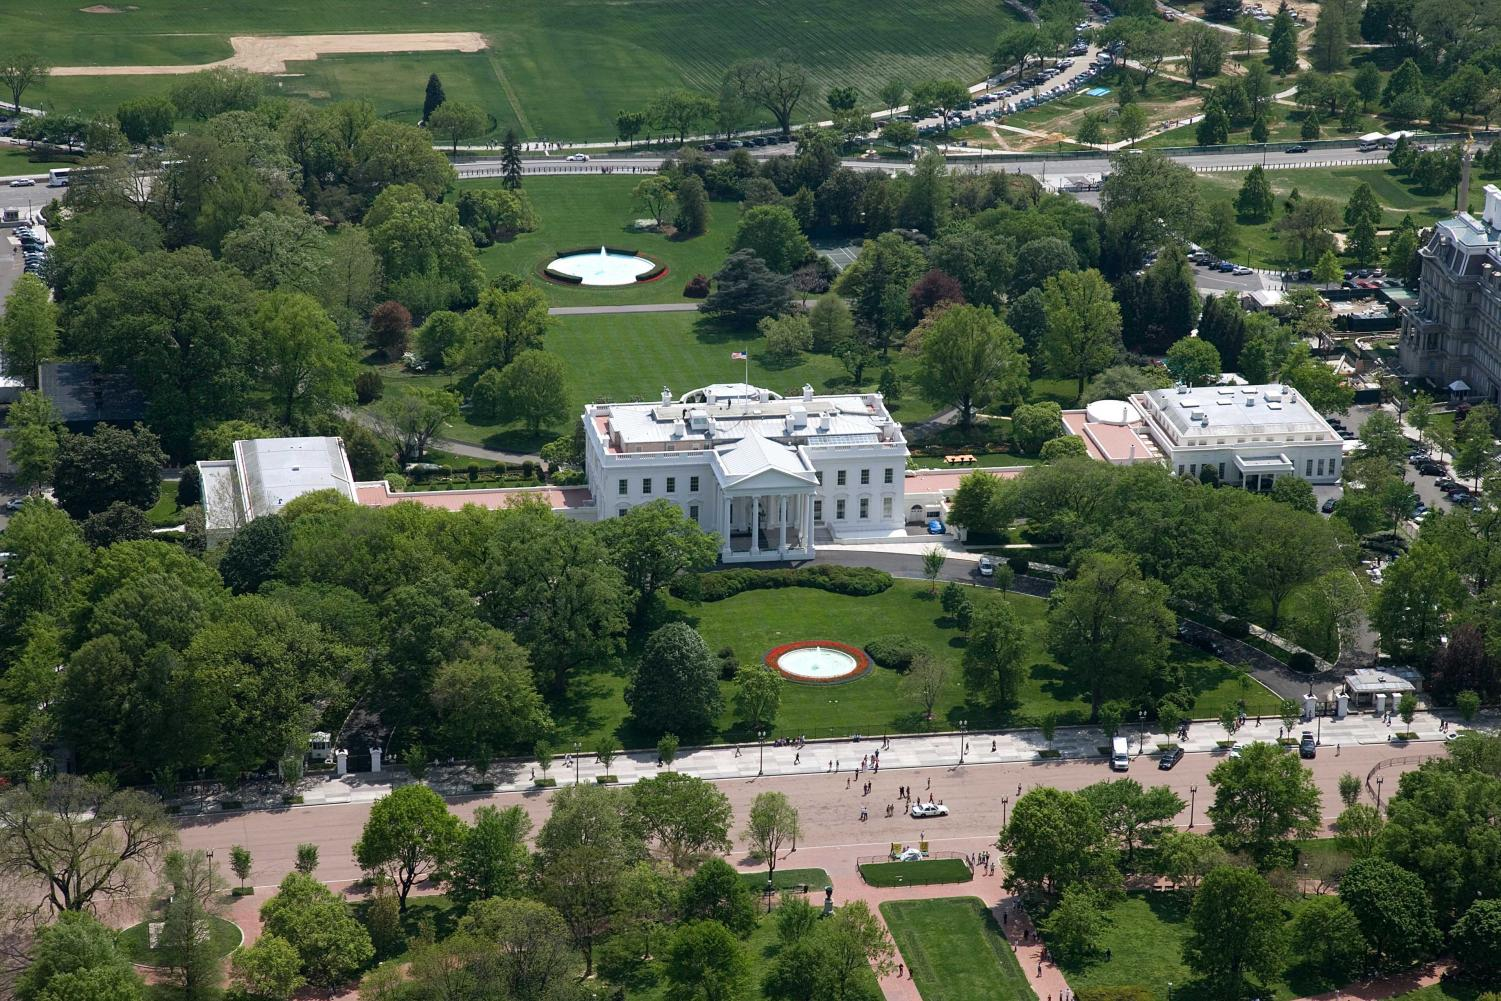 Aerial photo of the White House